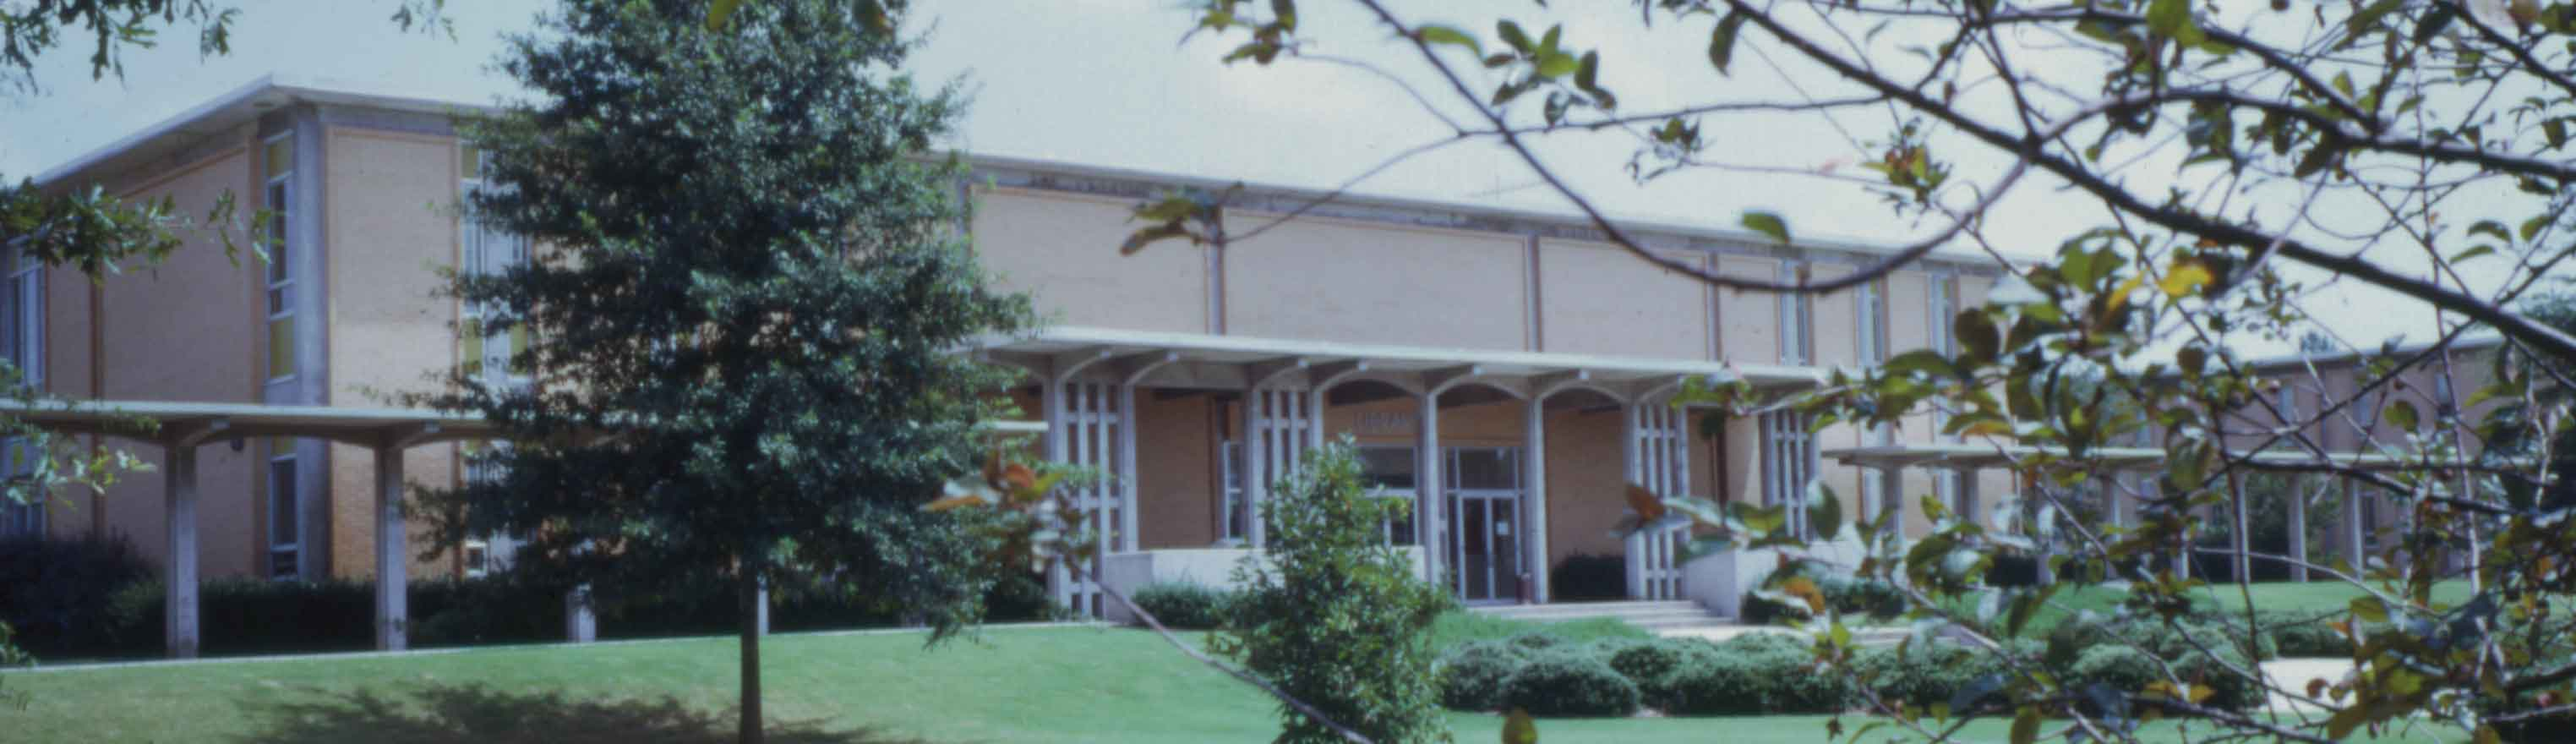 View of the Pilcher Building in the 1990s